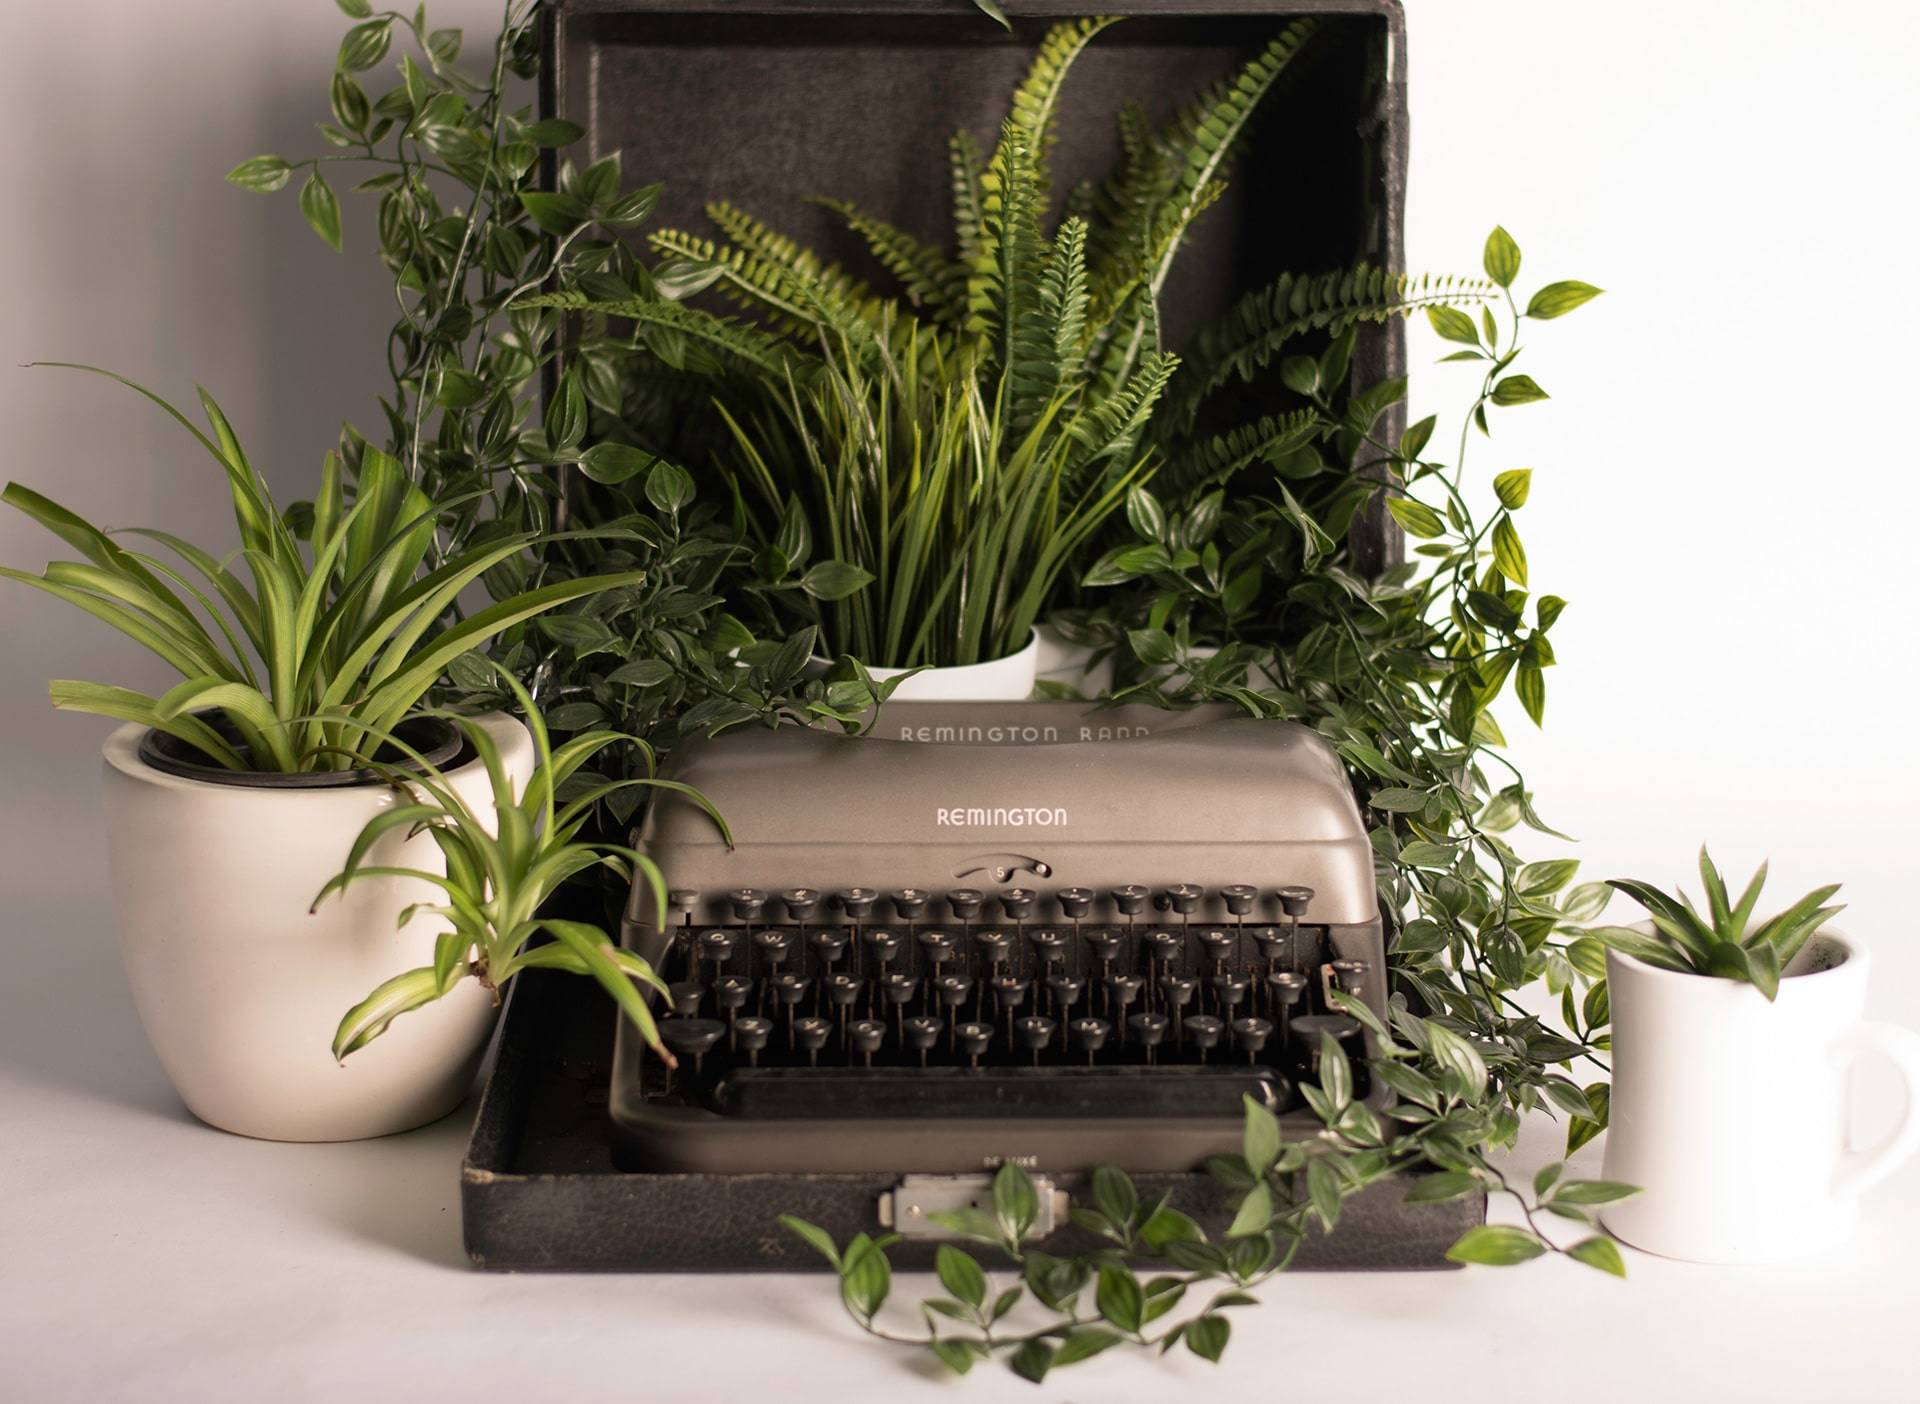 Typewriter with plants